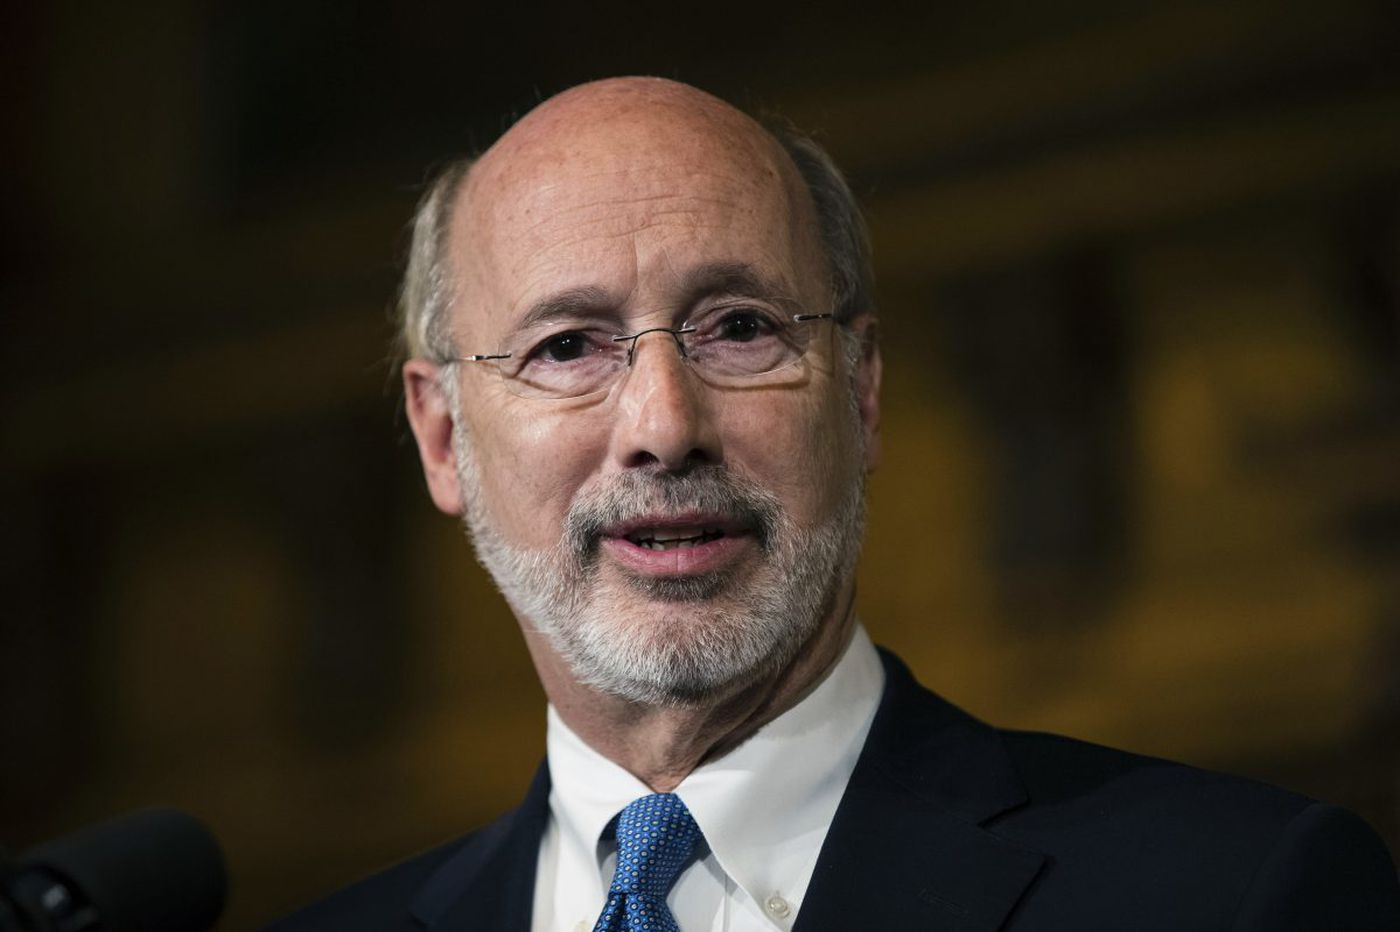 Gov. Wolf: Time for House Republicans to act on budget